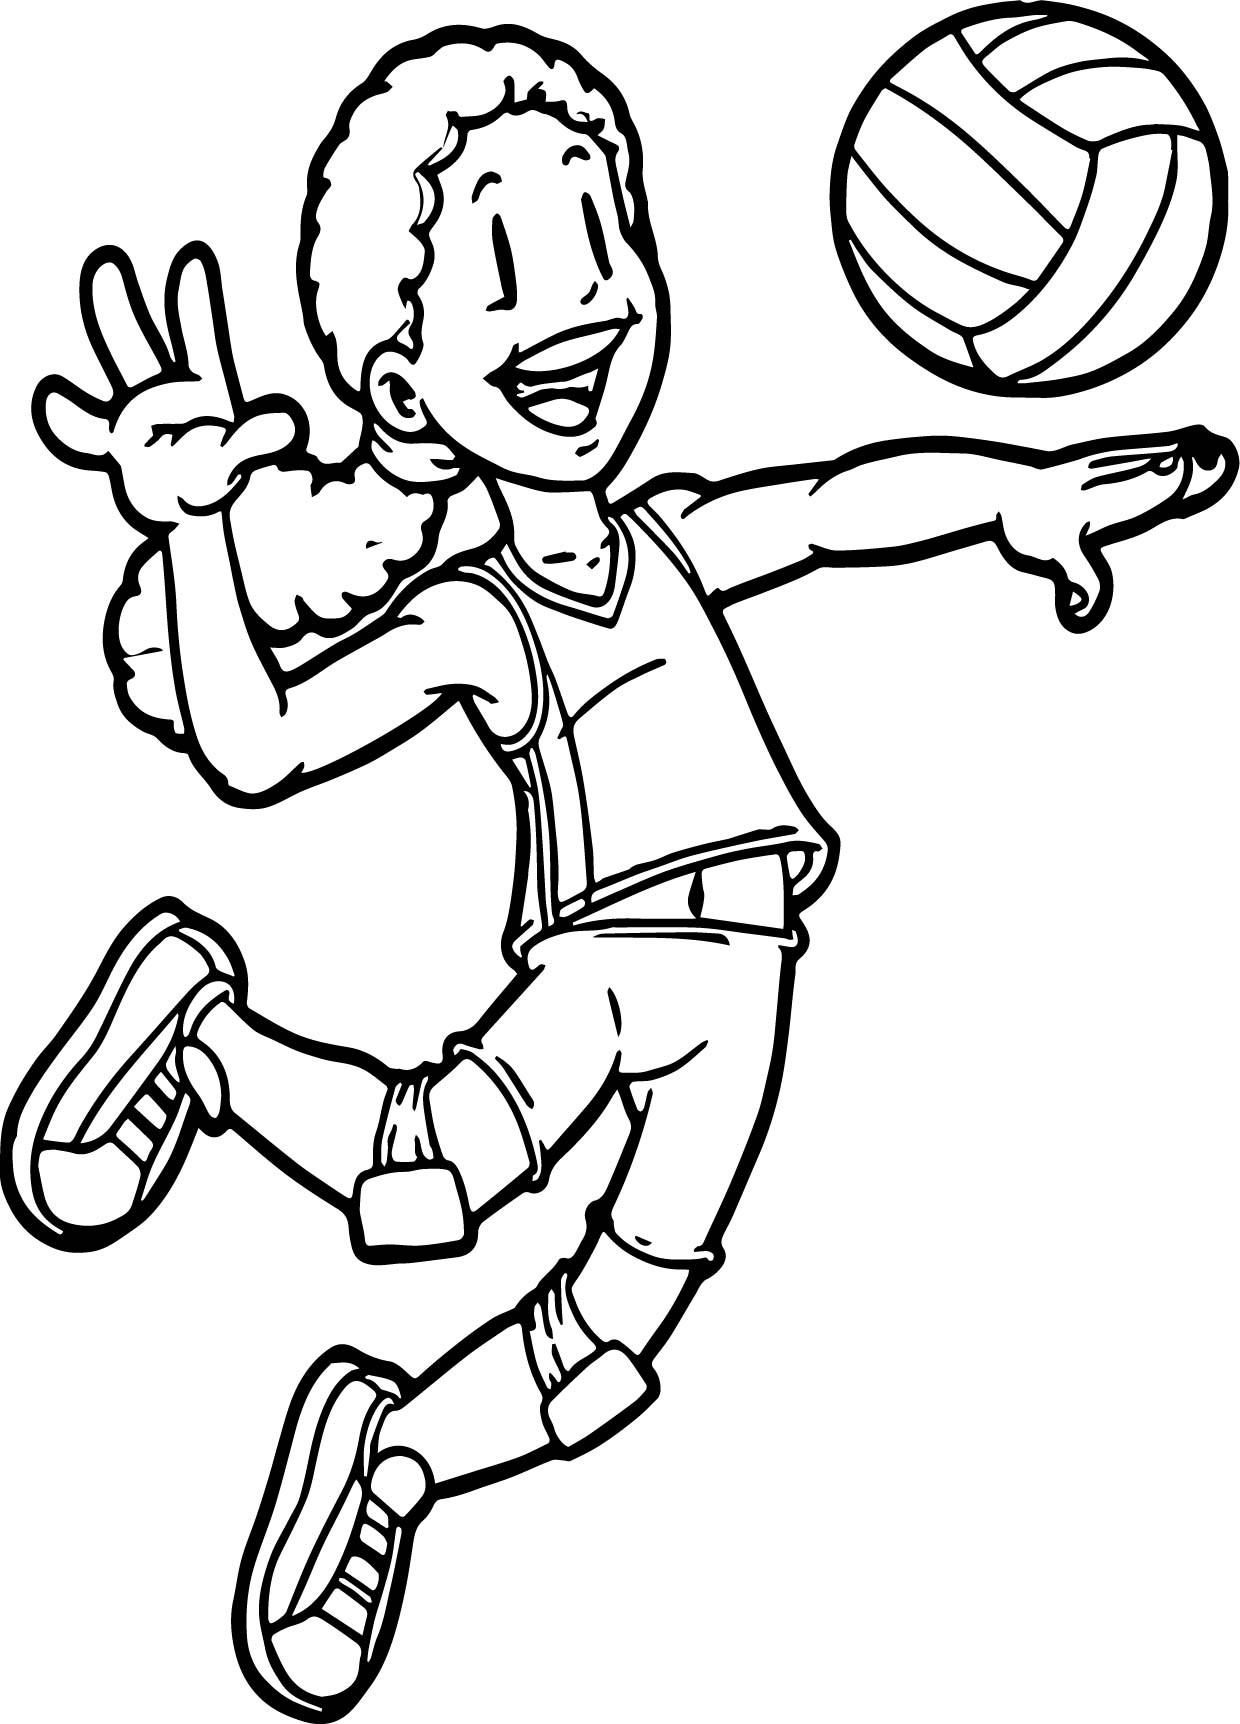 1240x1724 Volleyball Coloring Pages Beautiful Kids Playing Sports Volleyball